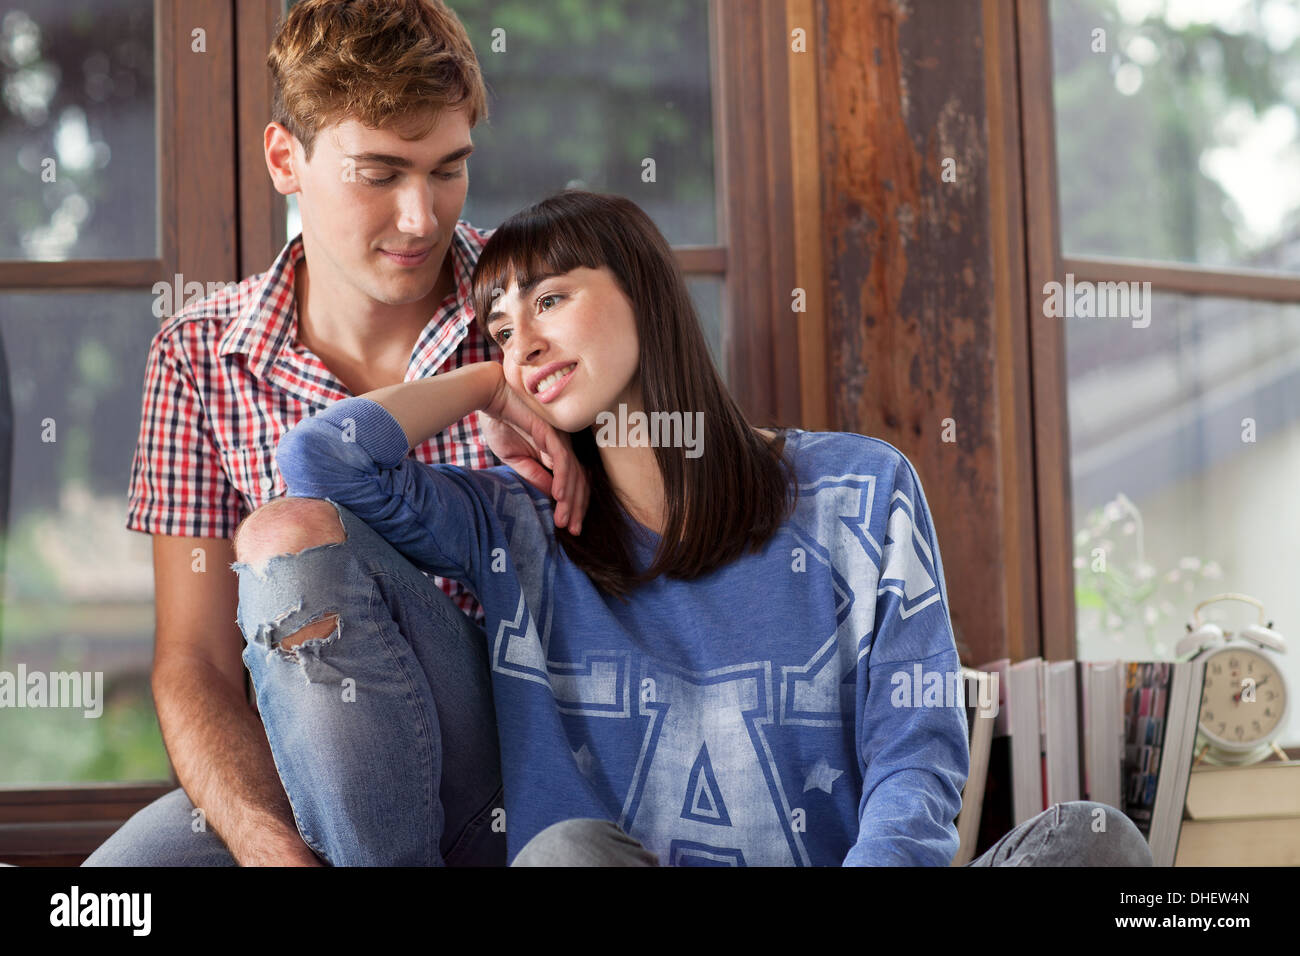 Portrait of couple, woman leaning on man's knee - Stock Image